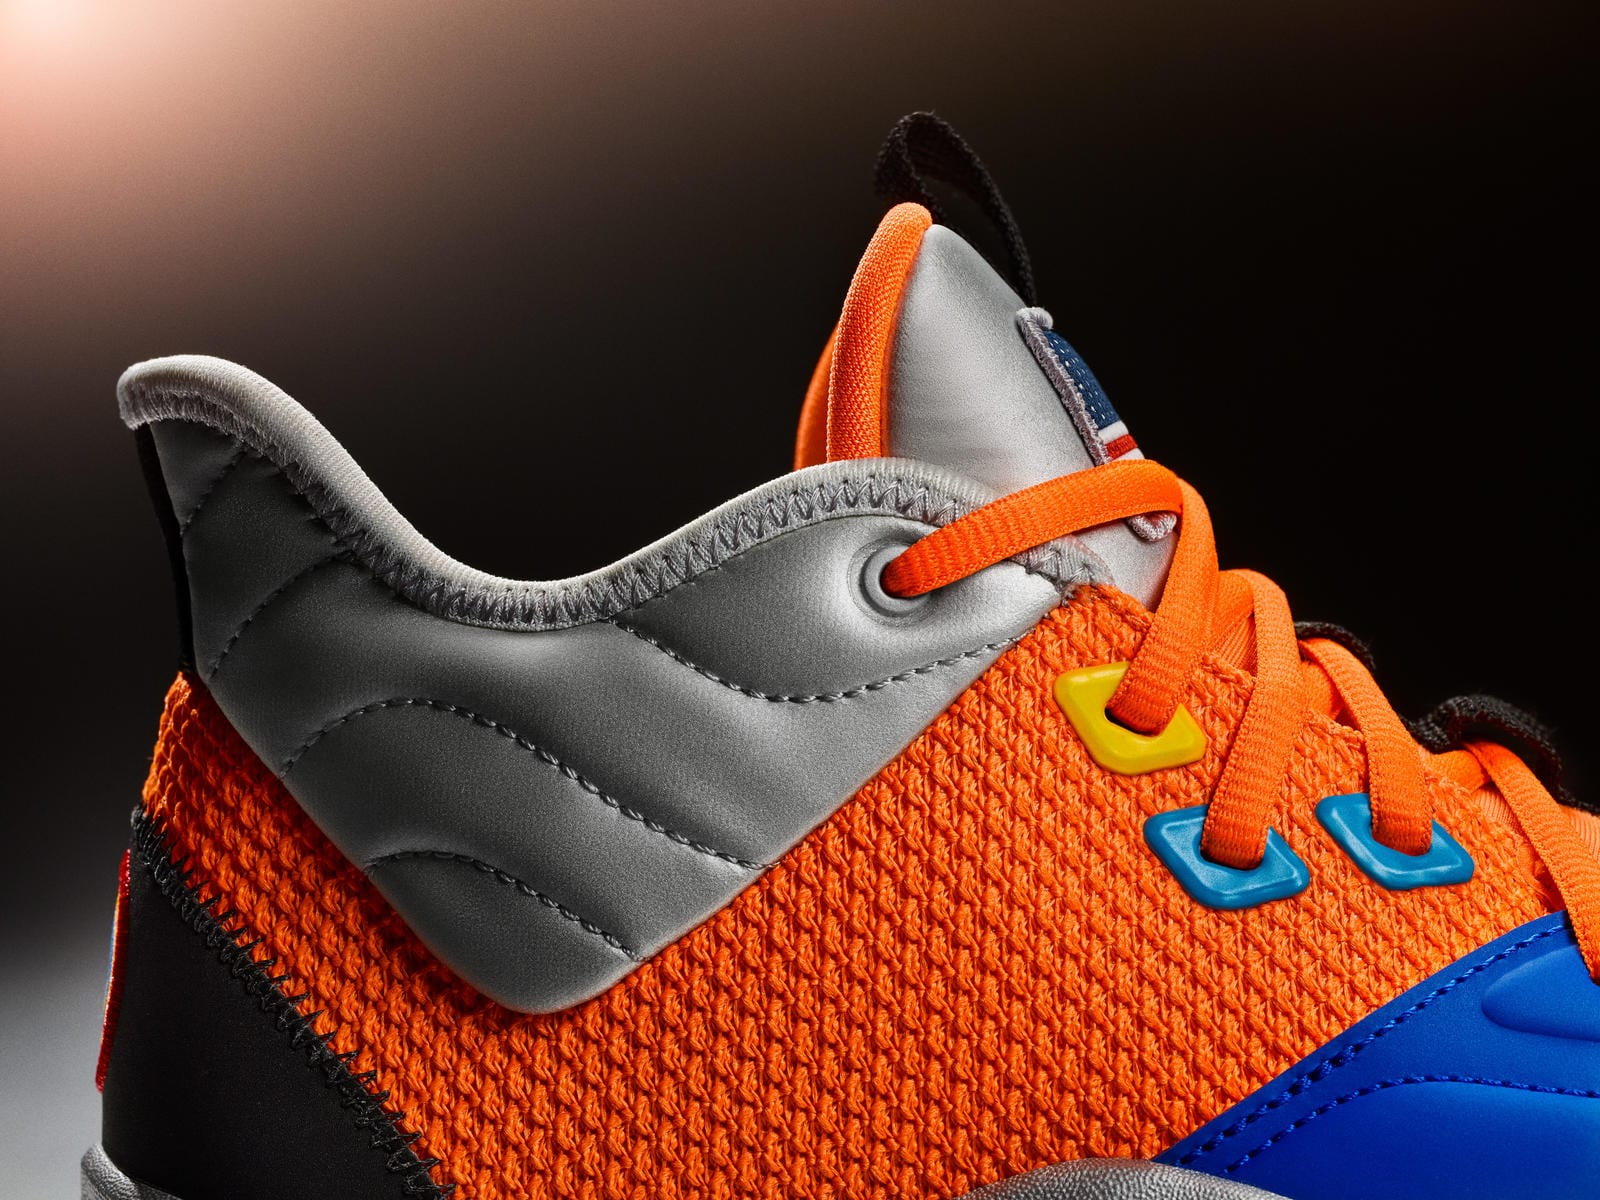 78db08f9b013 Nike   NASA Come Together For Paul George s New PG3 Signature Shoe